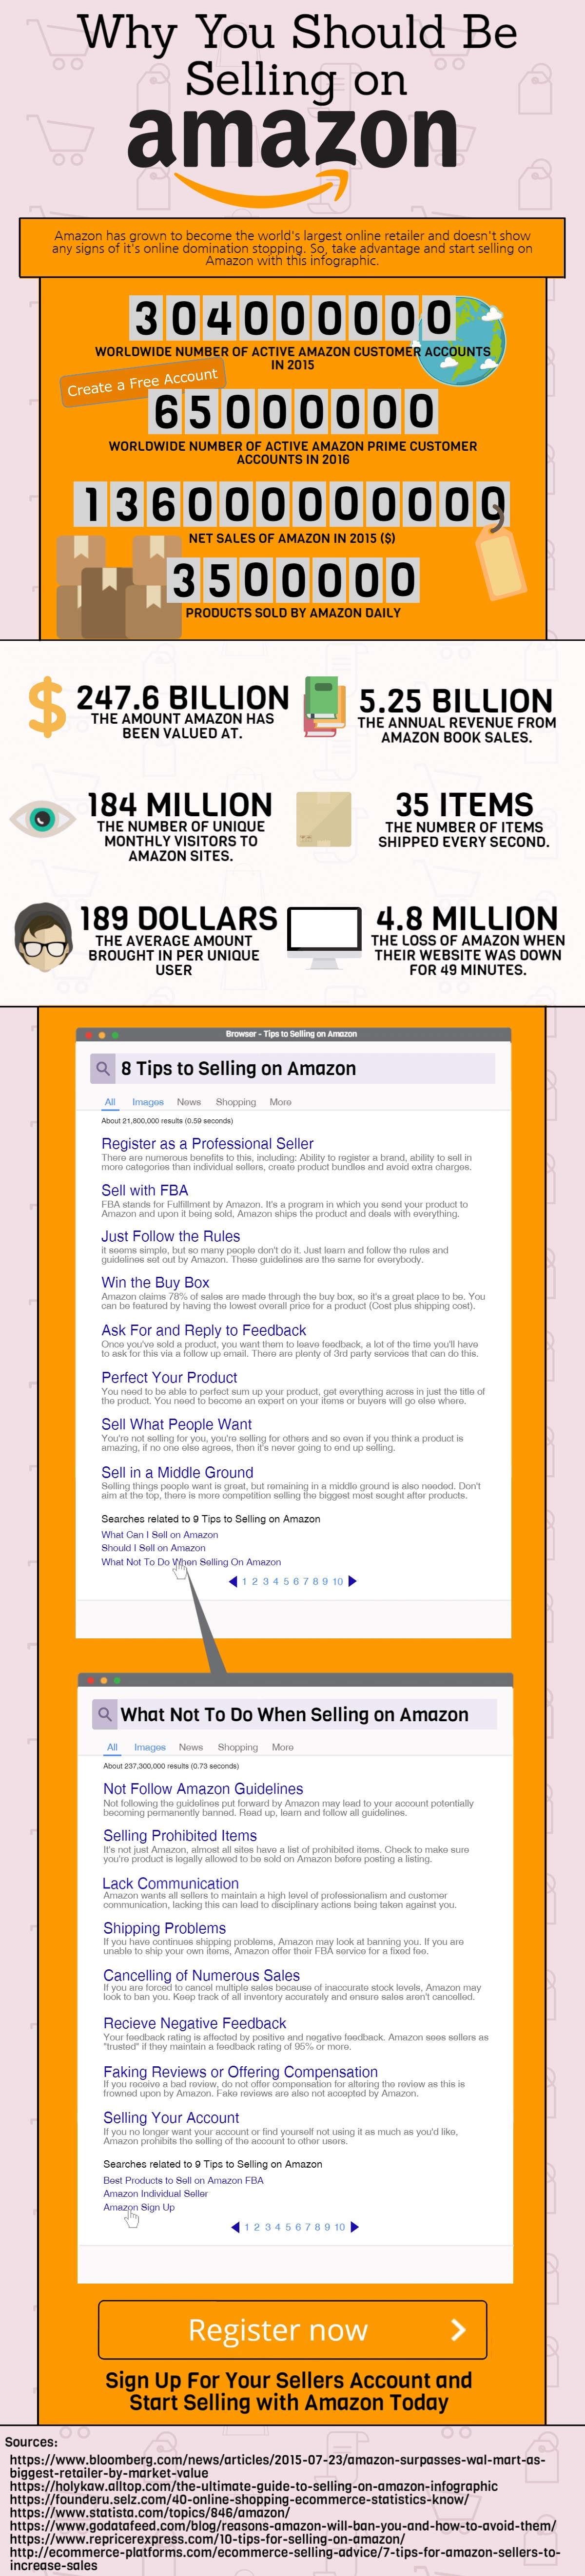 Why Sell on Amazon? [Infographic]